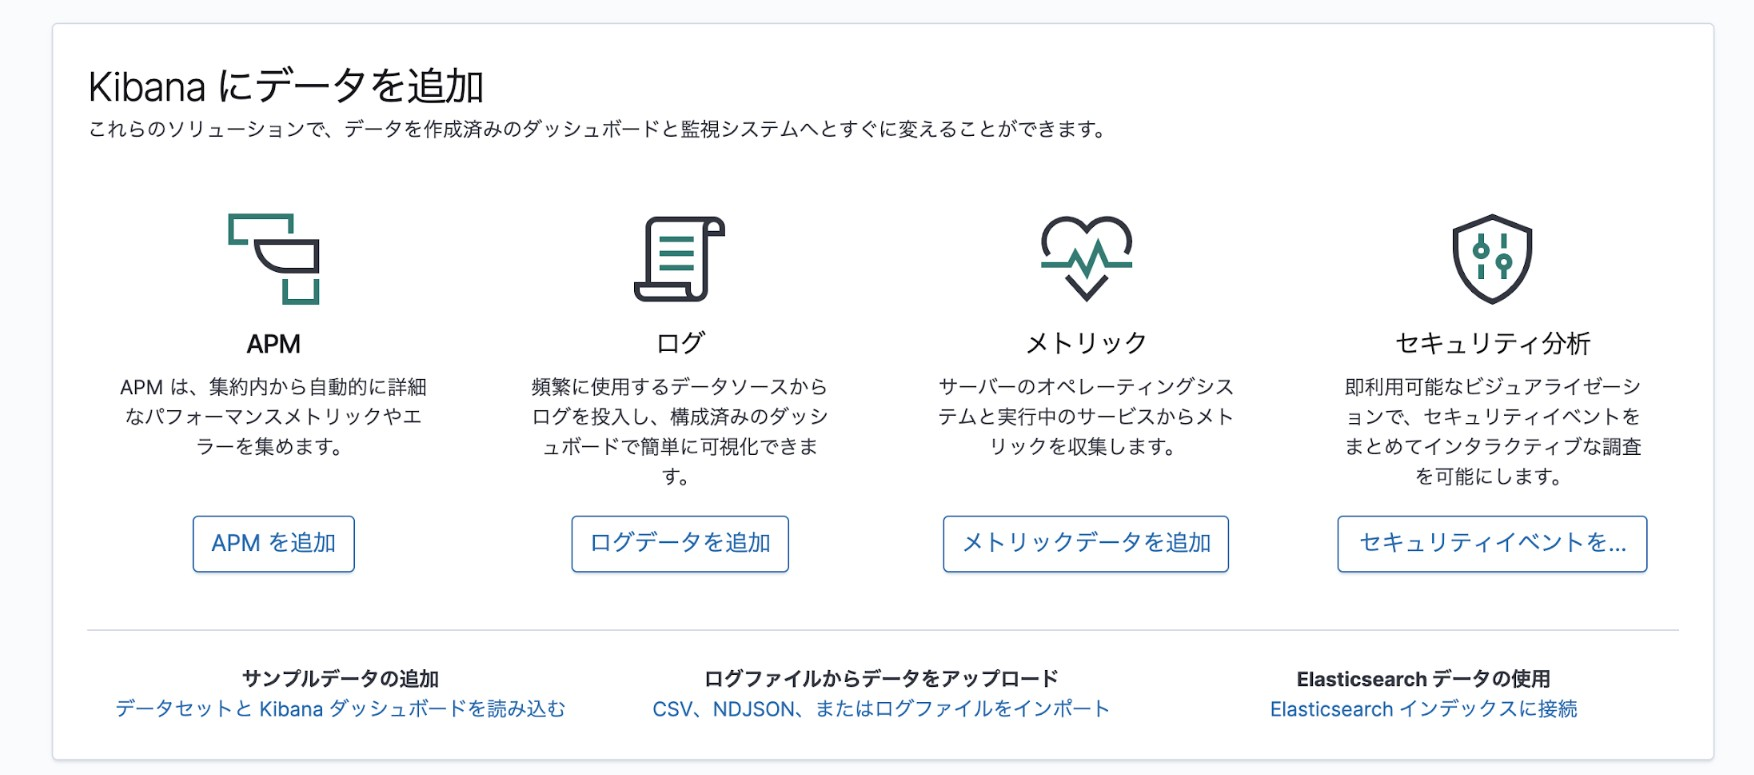 Kibana localized in Japanese